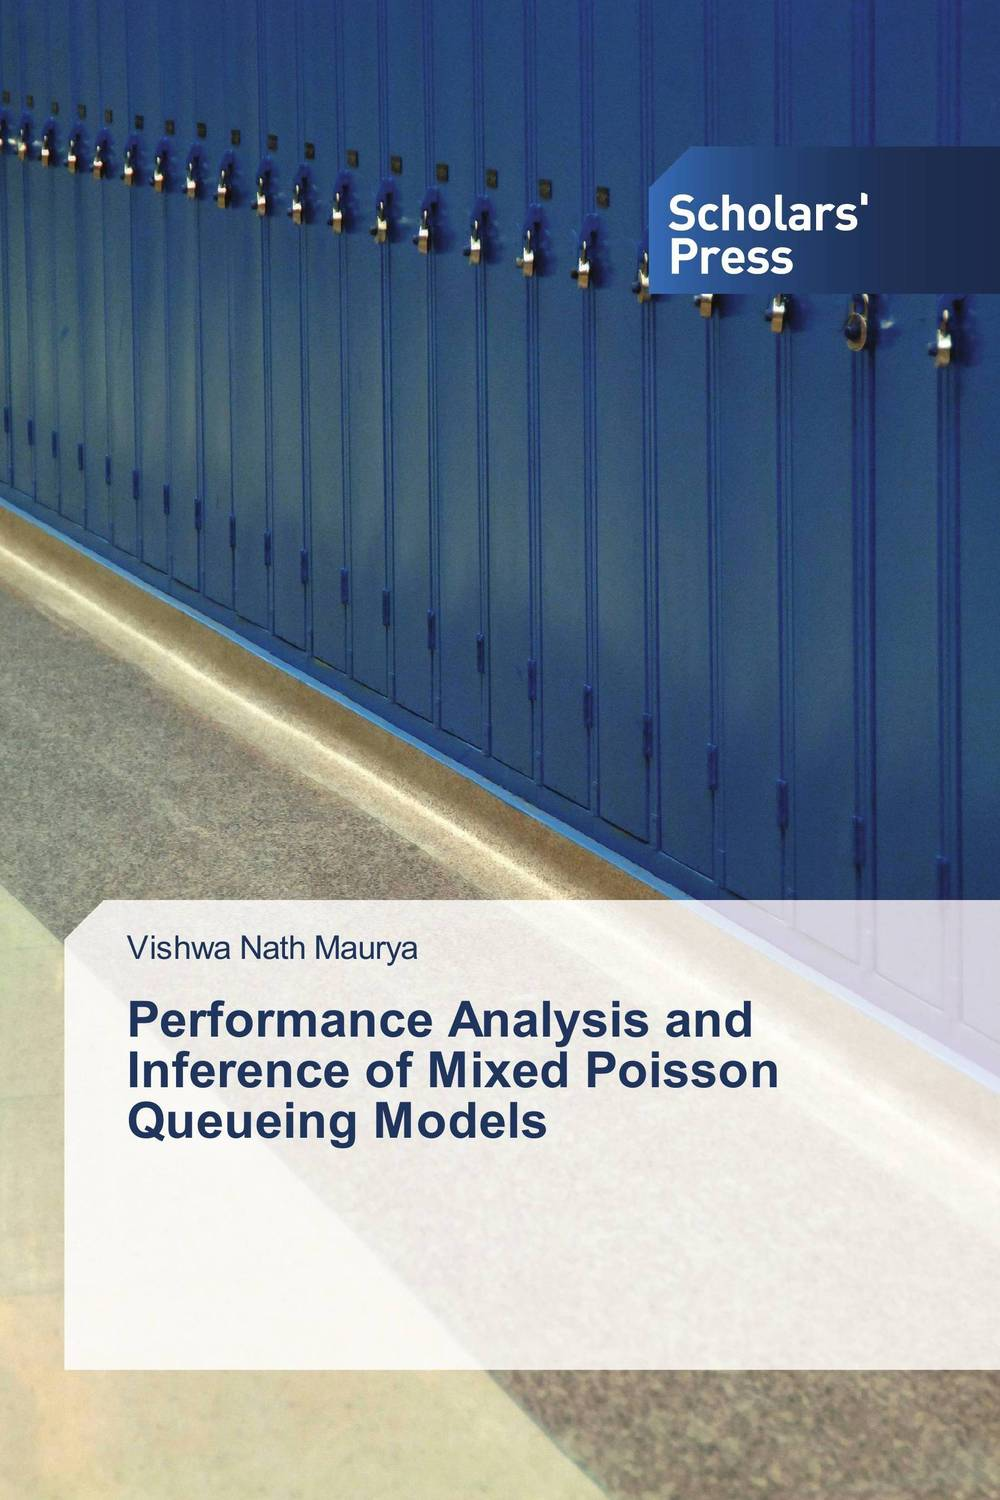 Performance Analysis and Inference of Mixed Poisson Queueing Models